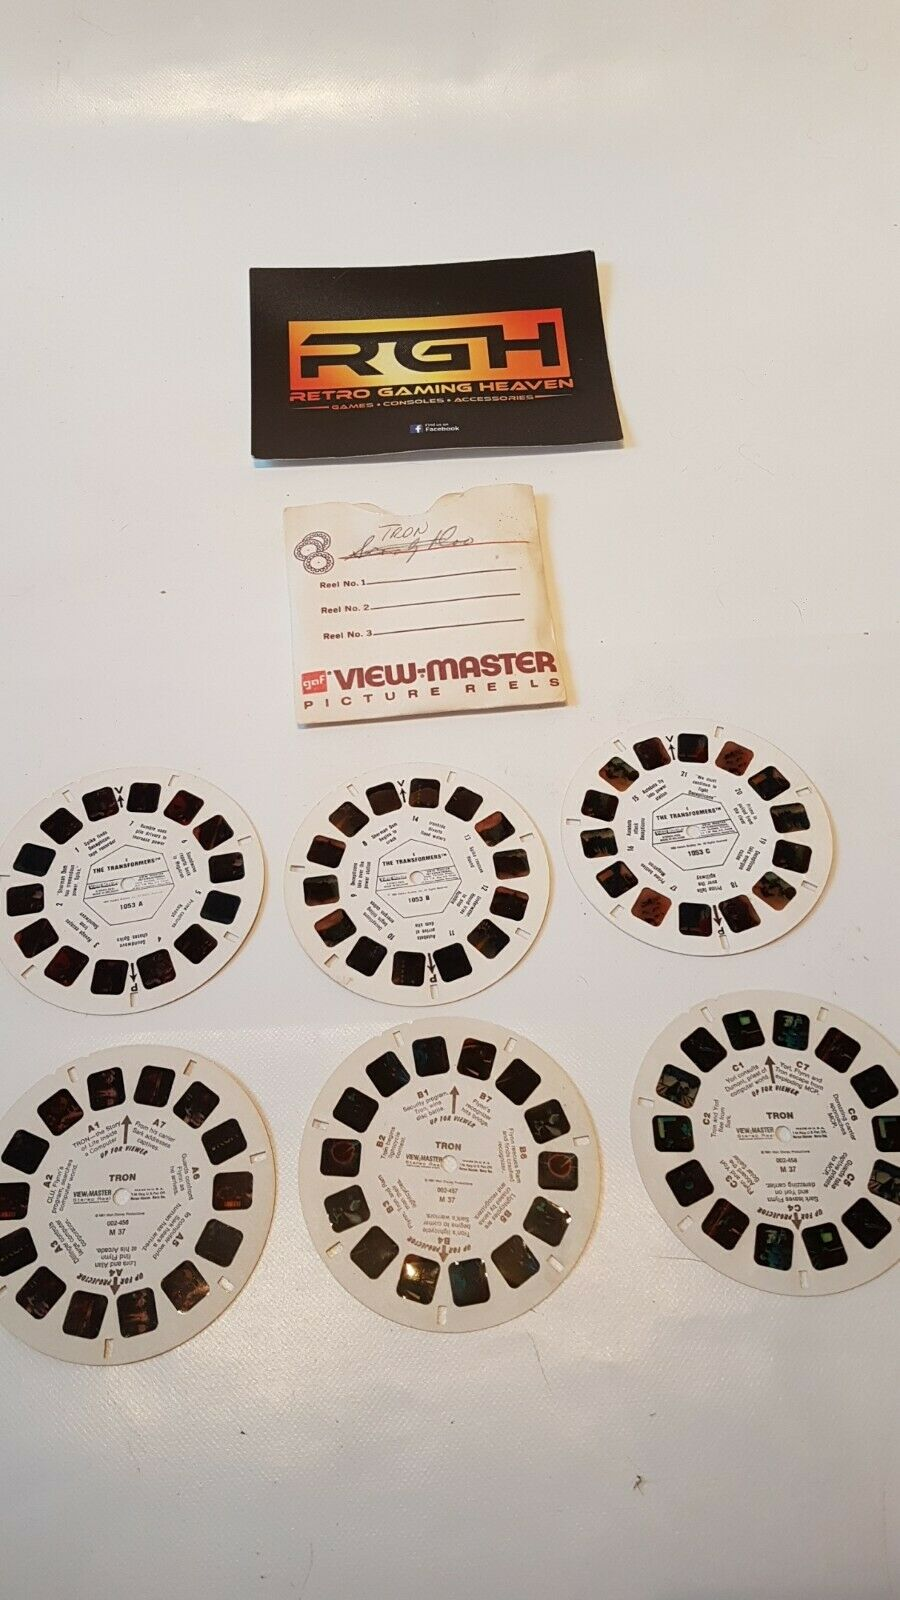 3X TRON AND 3X TRANSFORMERS TRANSFORMERS VIEW-MASTER PICTURE REELS IN SLEEVE, RARE